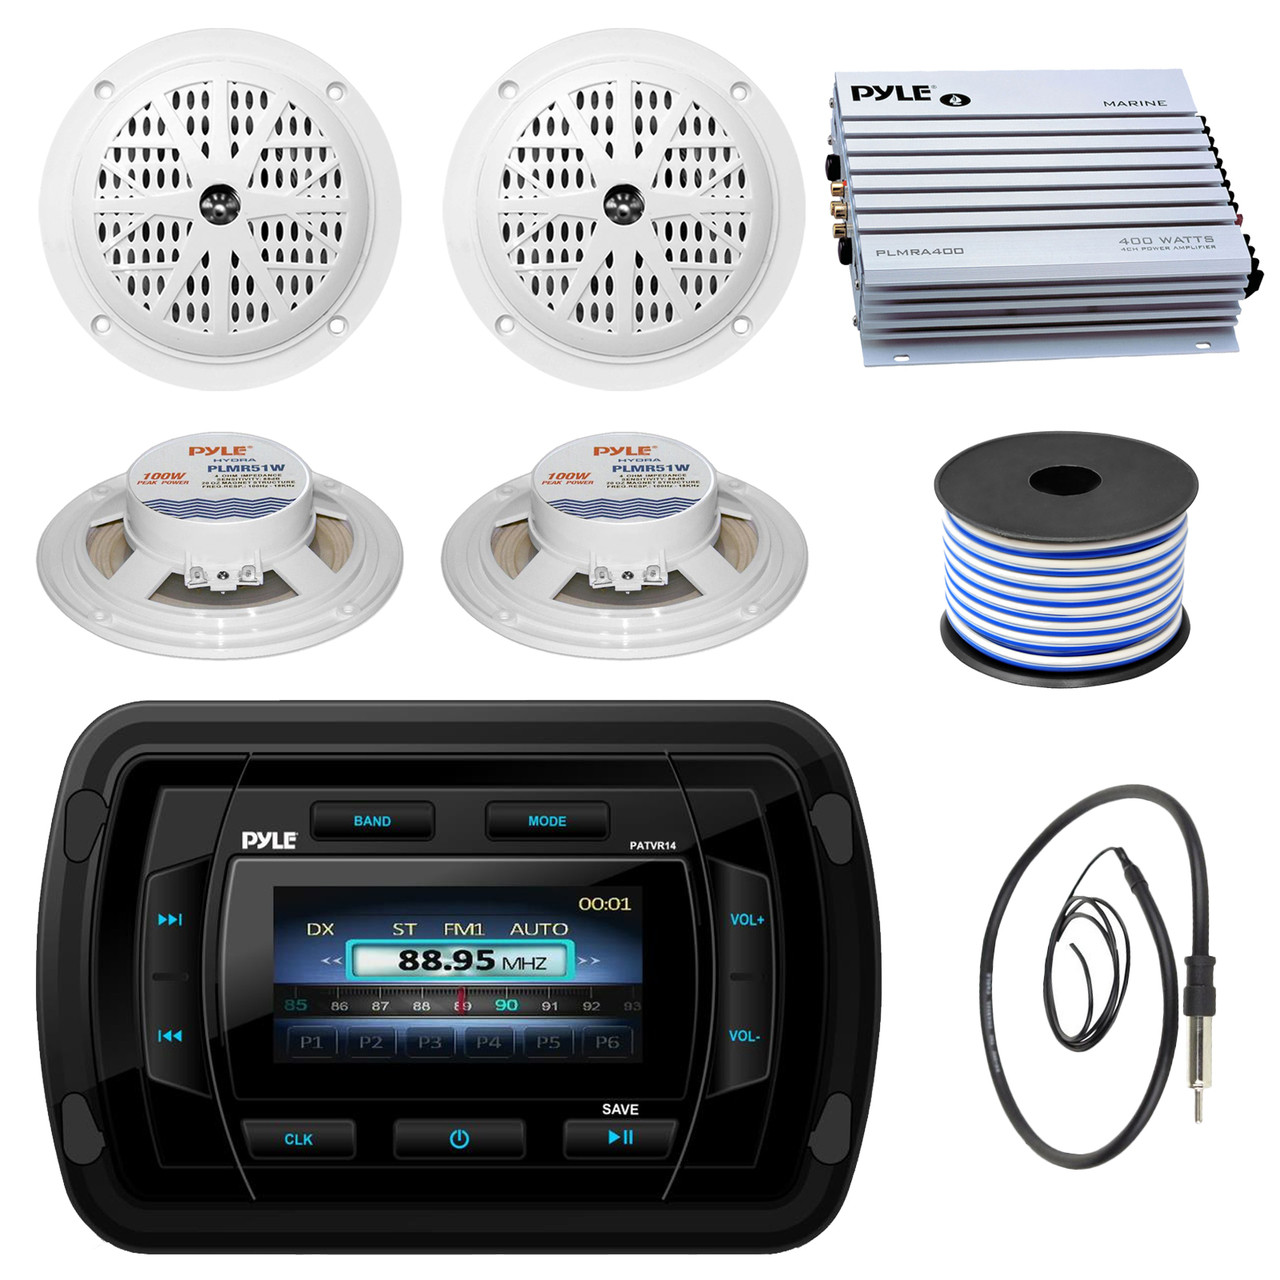 Pyle Patvr14 Mp3 Mp5 Bluetooth Marine Boat Yacht Stereo Receiver 100w Car Subwoofer Amplifier Bundle Combo With 4x White 5